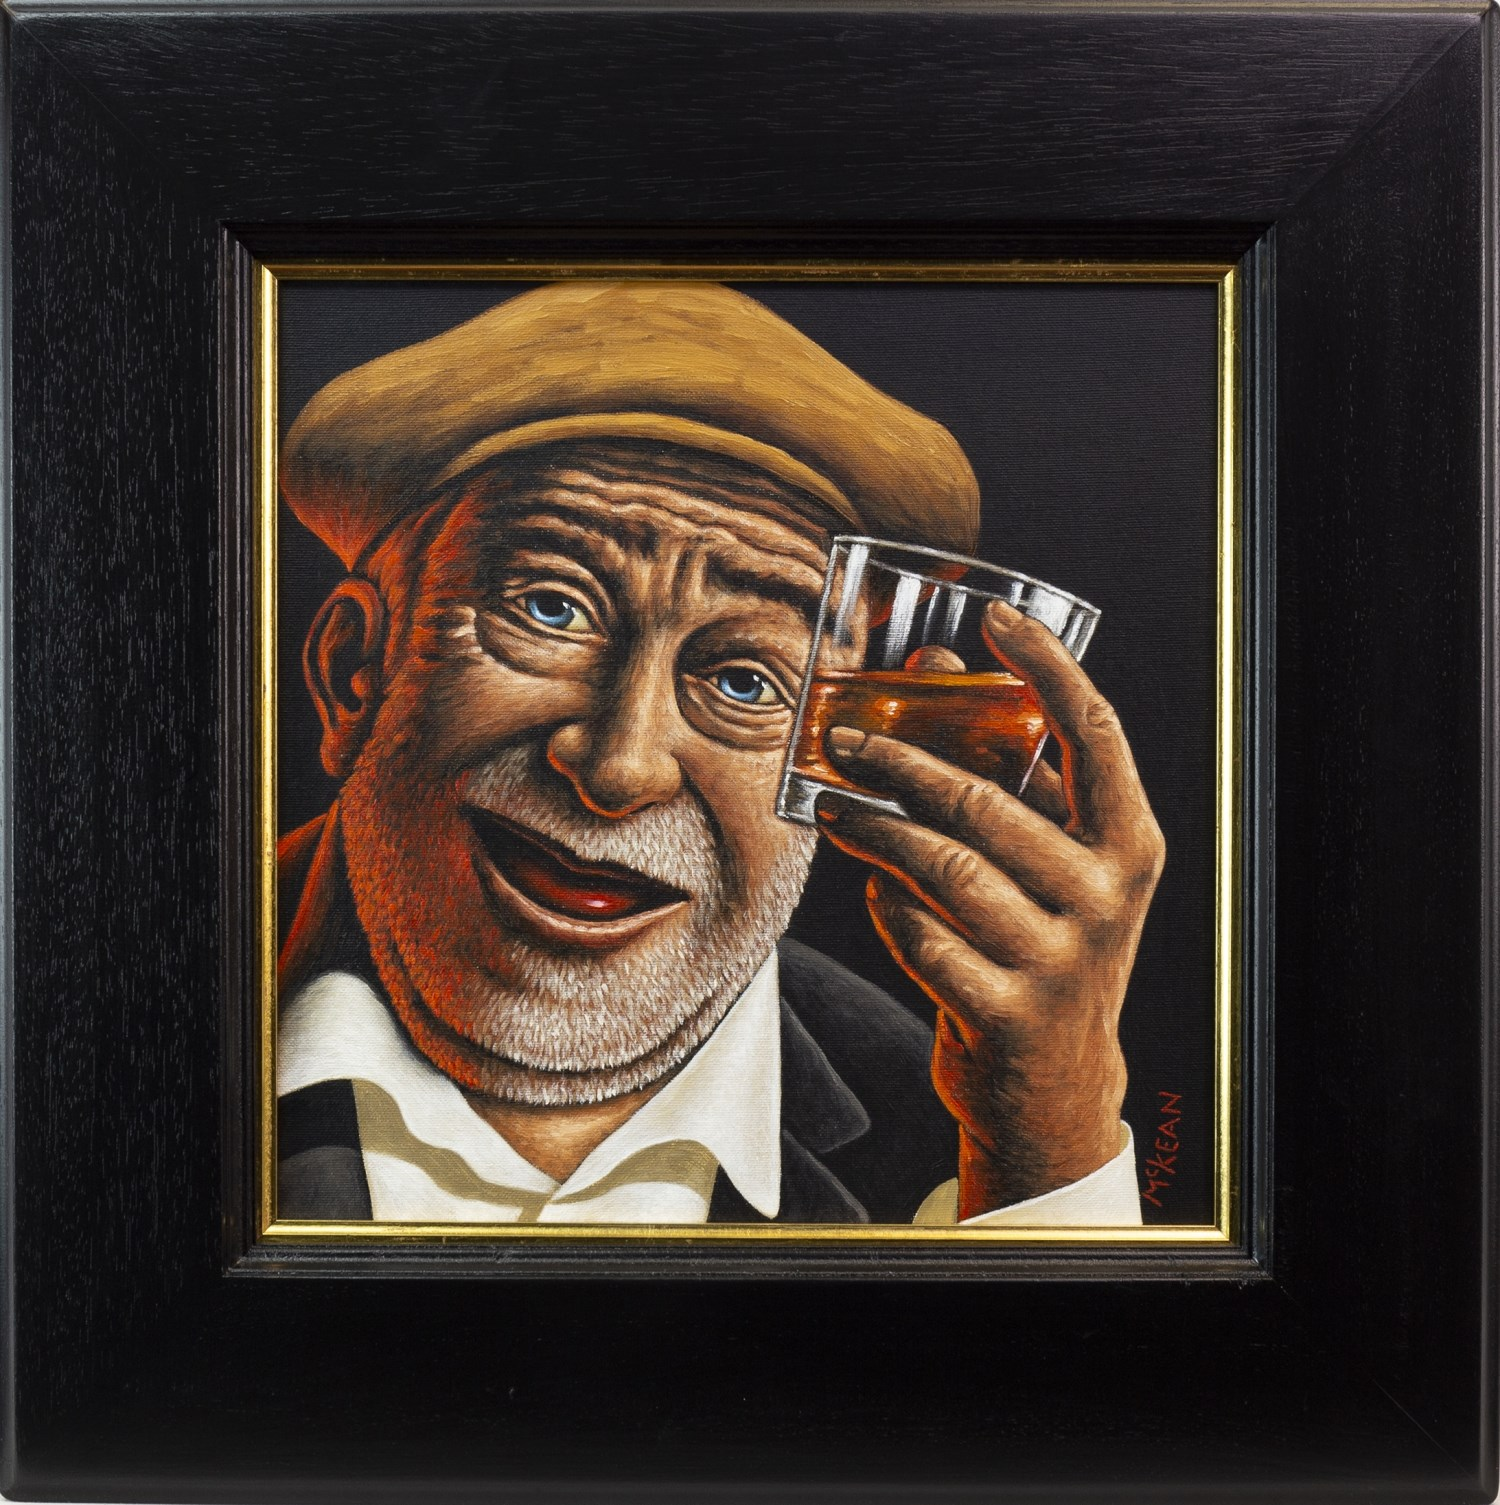 Lot 114 - TO GOOD HEALTH AND HAPPINESS, AN OIL ON CANVAS BY GRAHAM MCKEAN